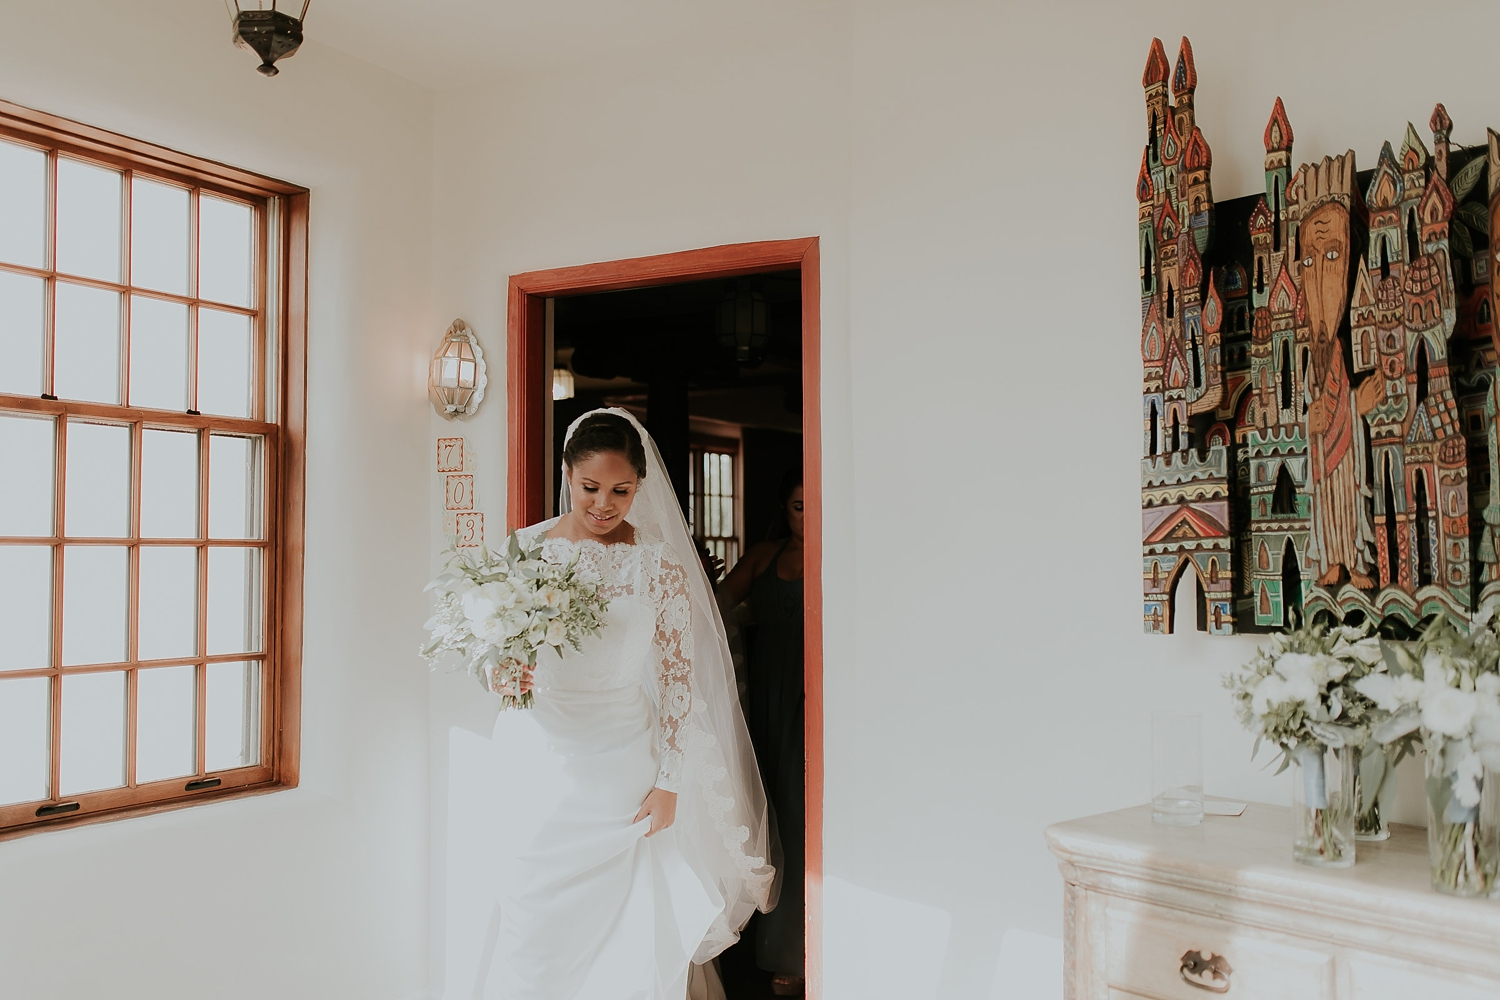 Alicia+lucia+photography+-+albuquerque+wedding+photographer+-+santa+fe+wedding+photography+-+new+mexico+wedding+photographer+-+new+mexico+engagement+-+la+fonda+new+mexico+wedding+-+la+fonda+fall+wedding_0023.jpg